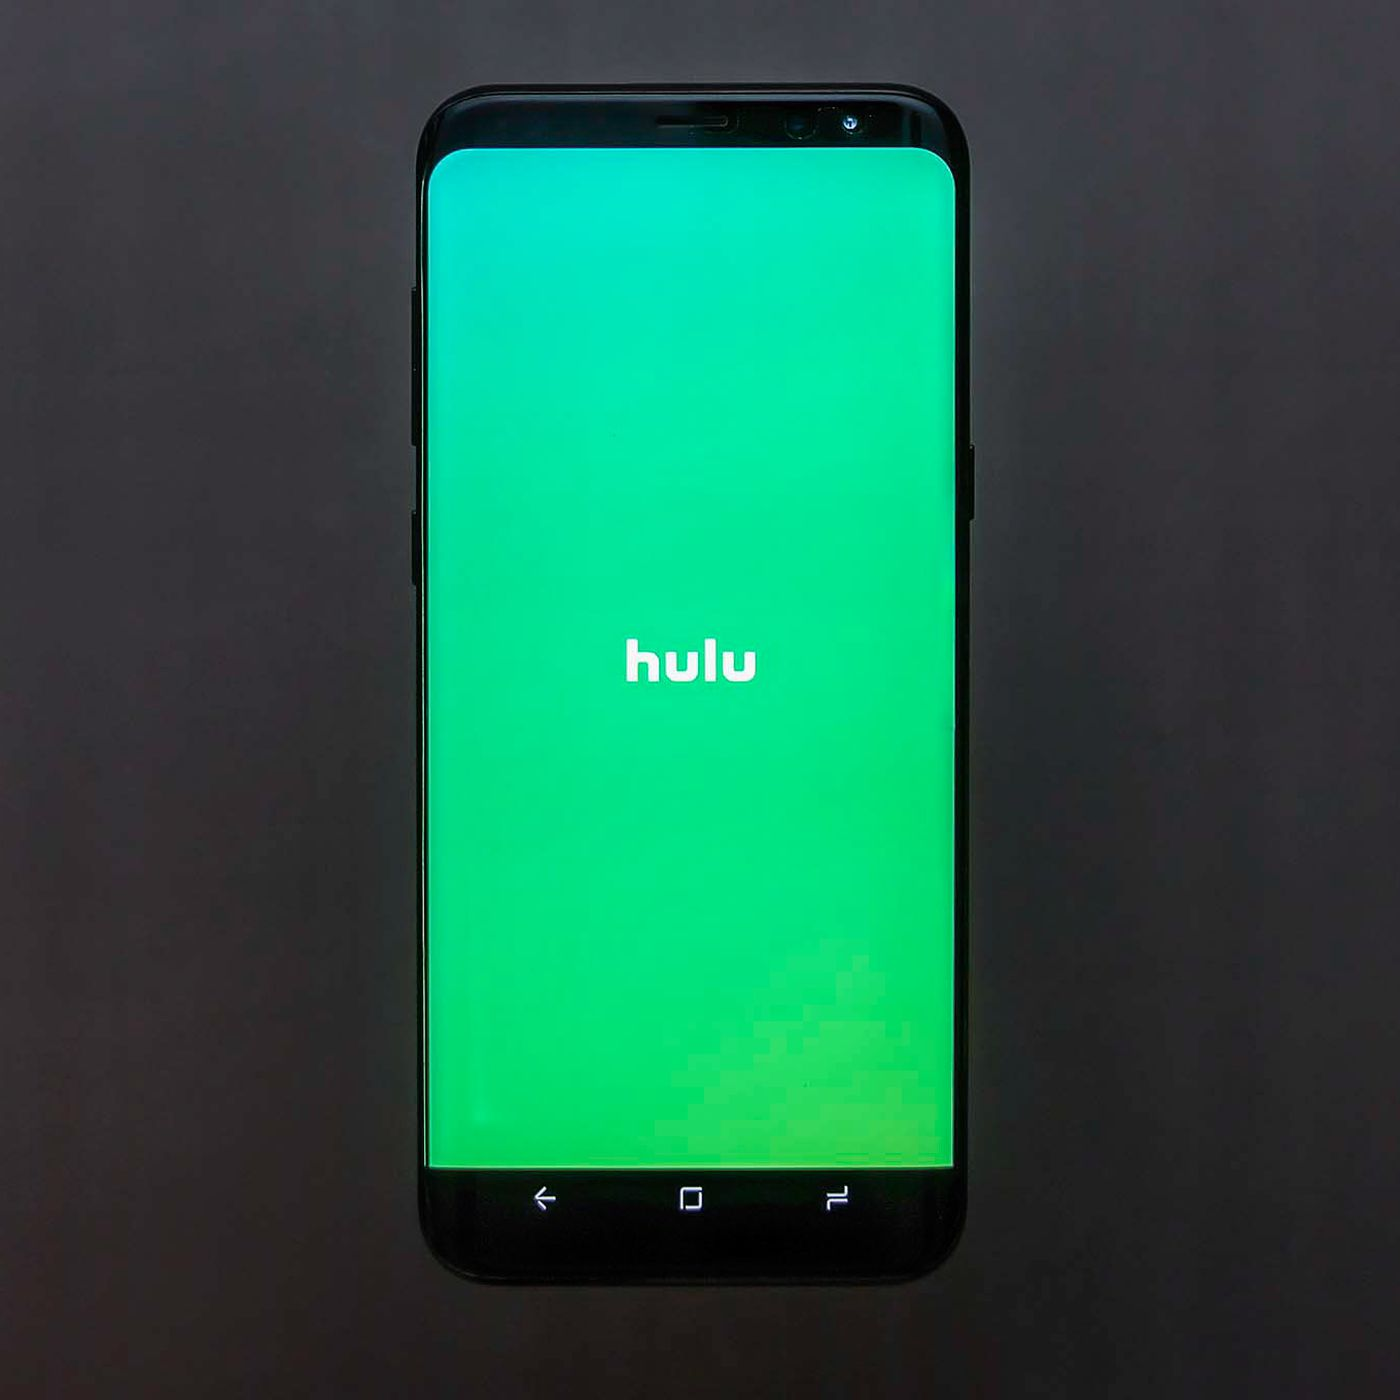 Hulu Drops To Just 5 99 Per Month After Netflix S Price Hikes The Verge